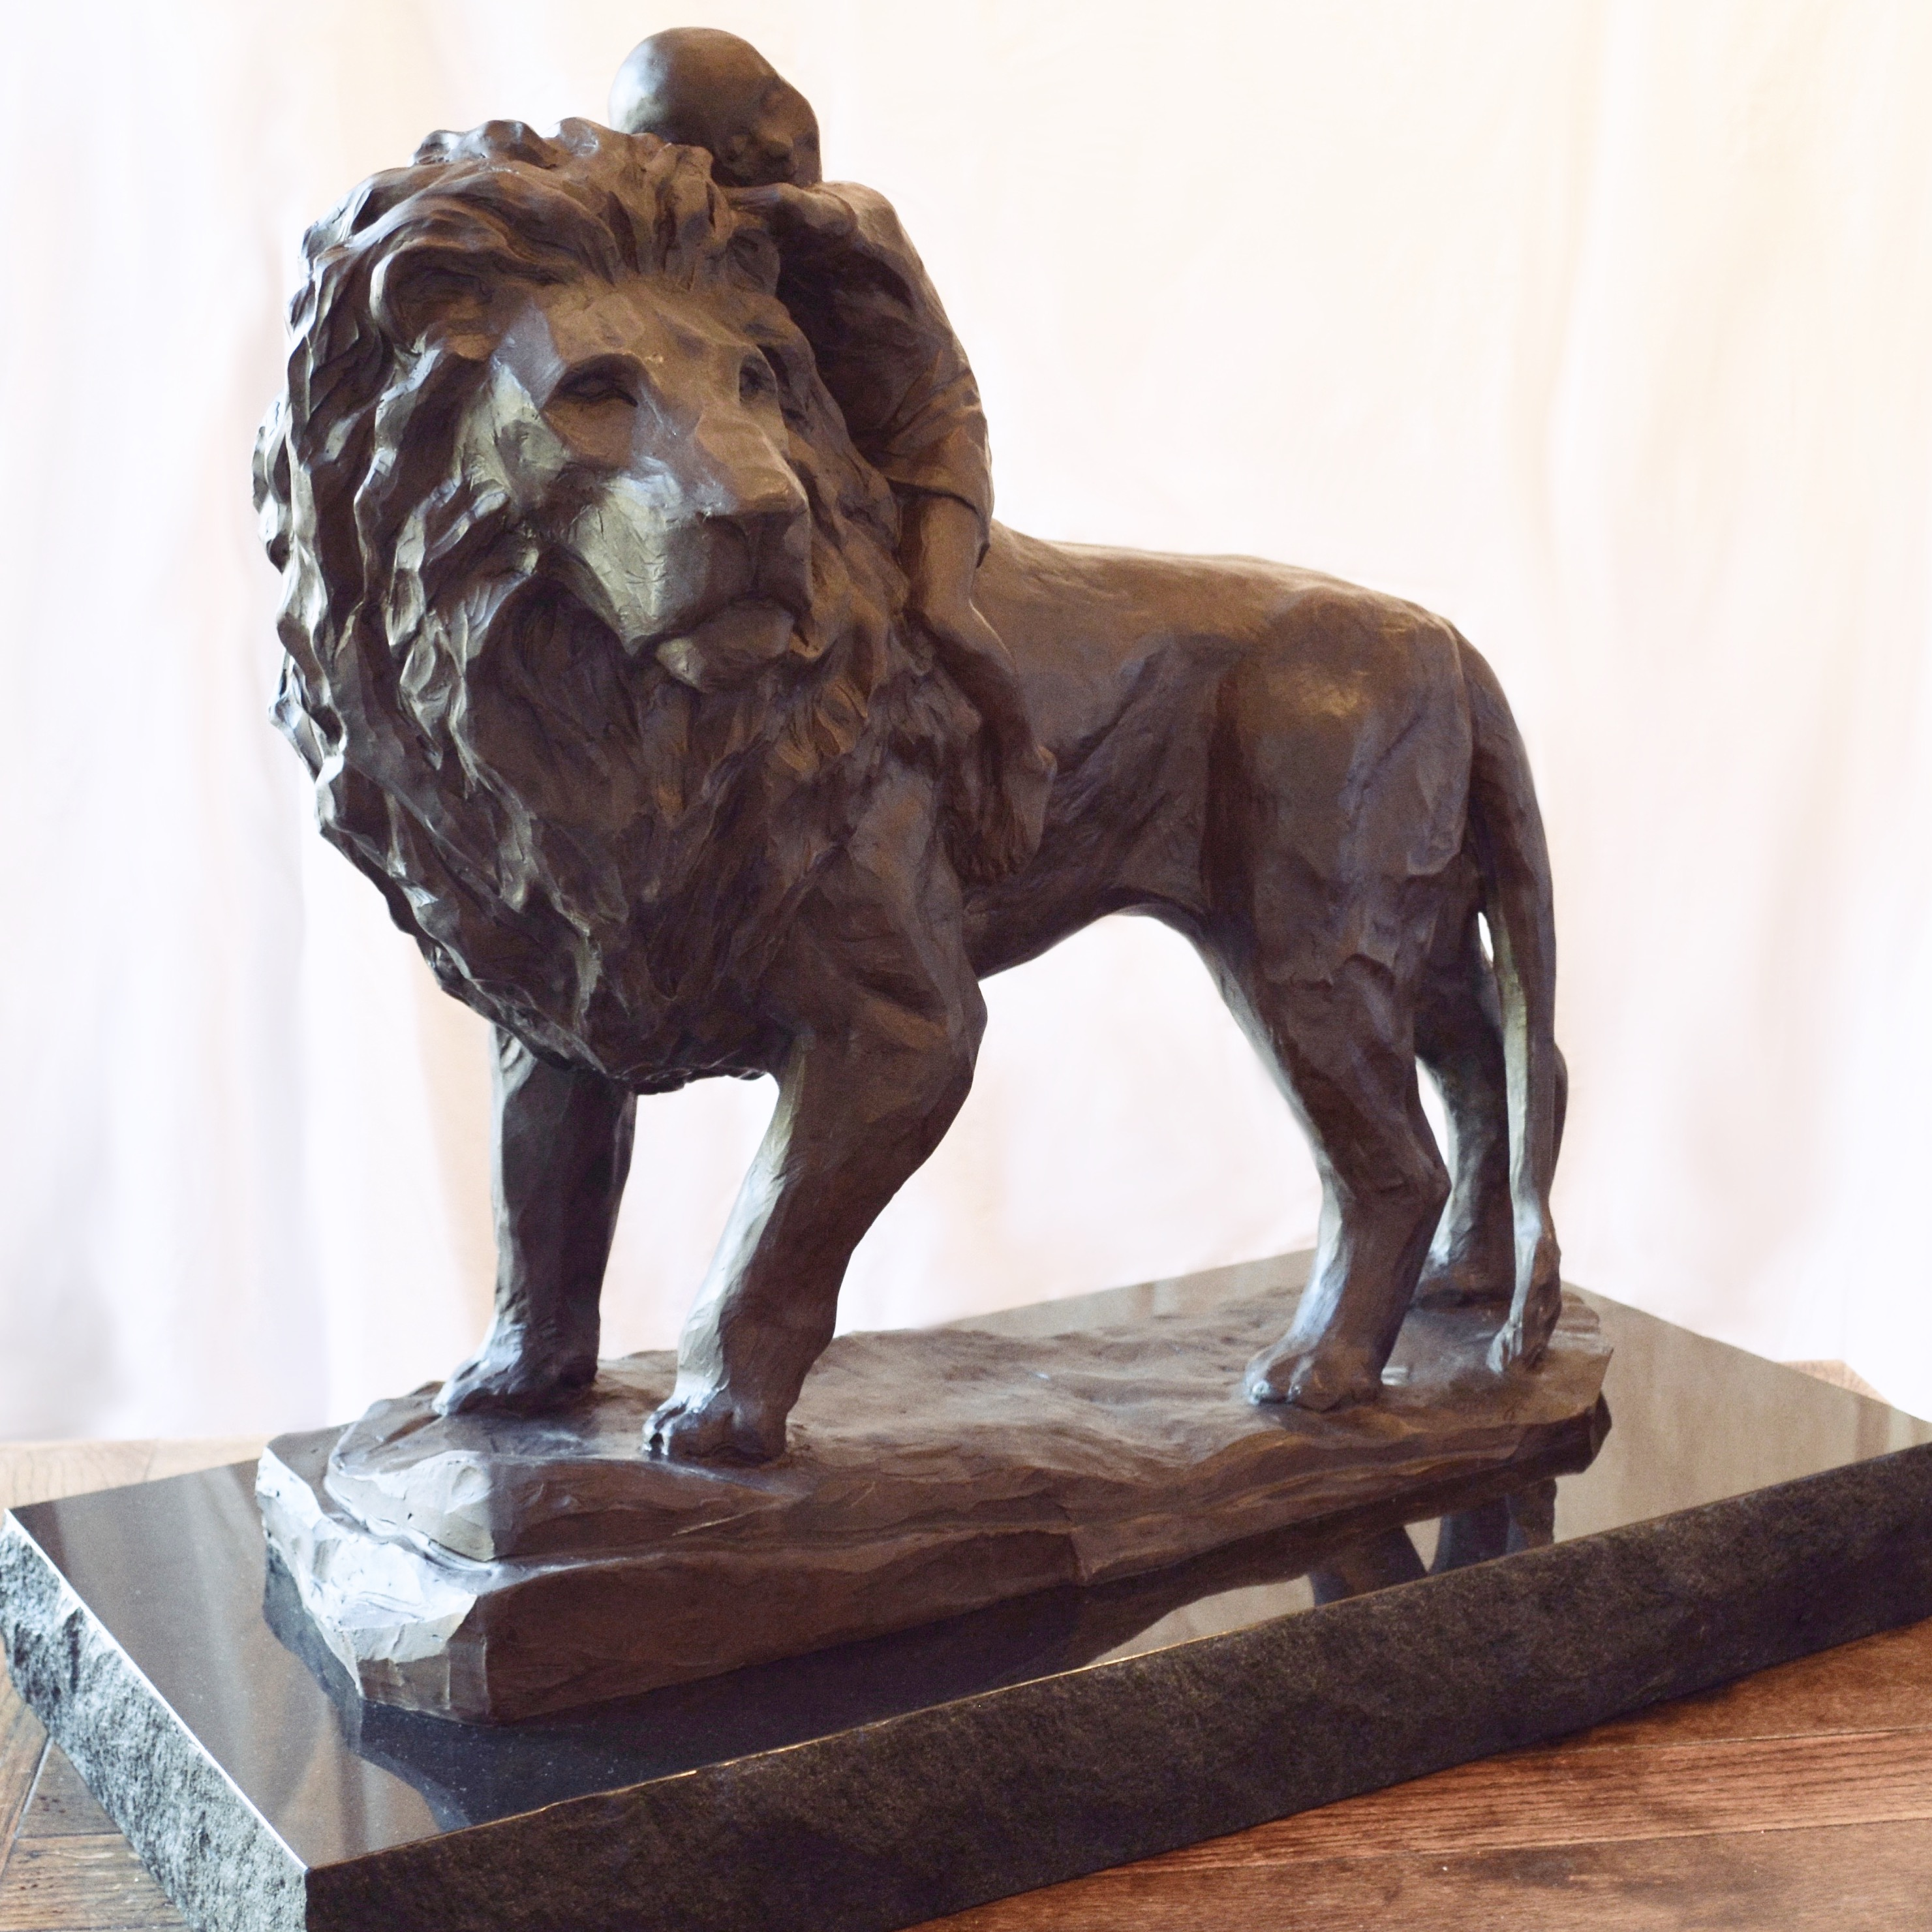 Fear Not sculpture for Greenville Memorial Hospital children's cancer treatment center. The bronze lion was made by Charles Pate Jr